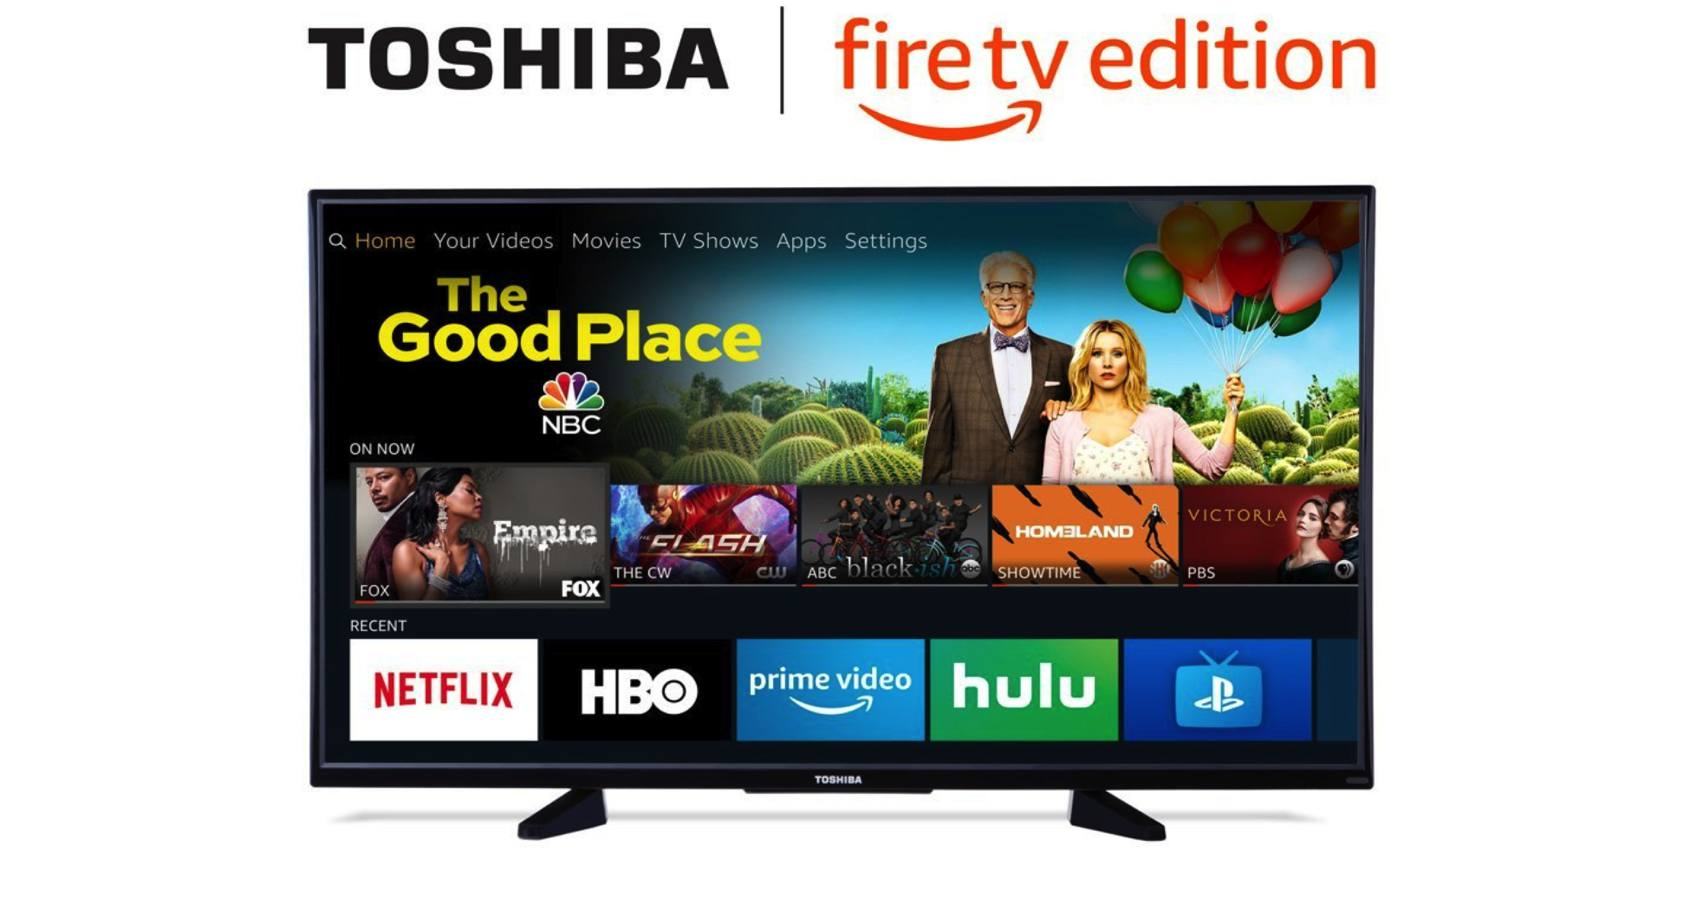 toshiba fire tv amazon